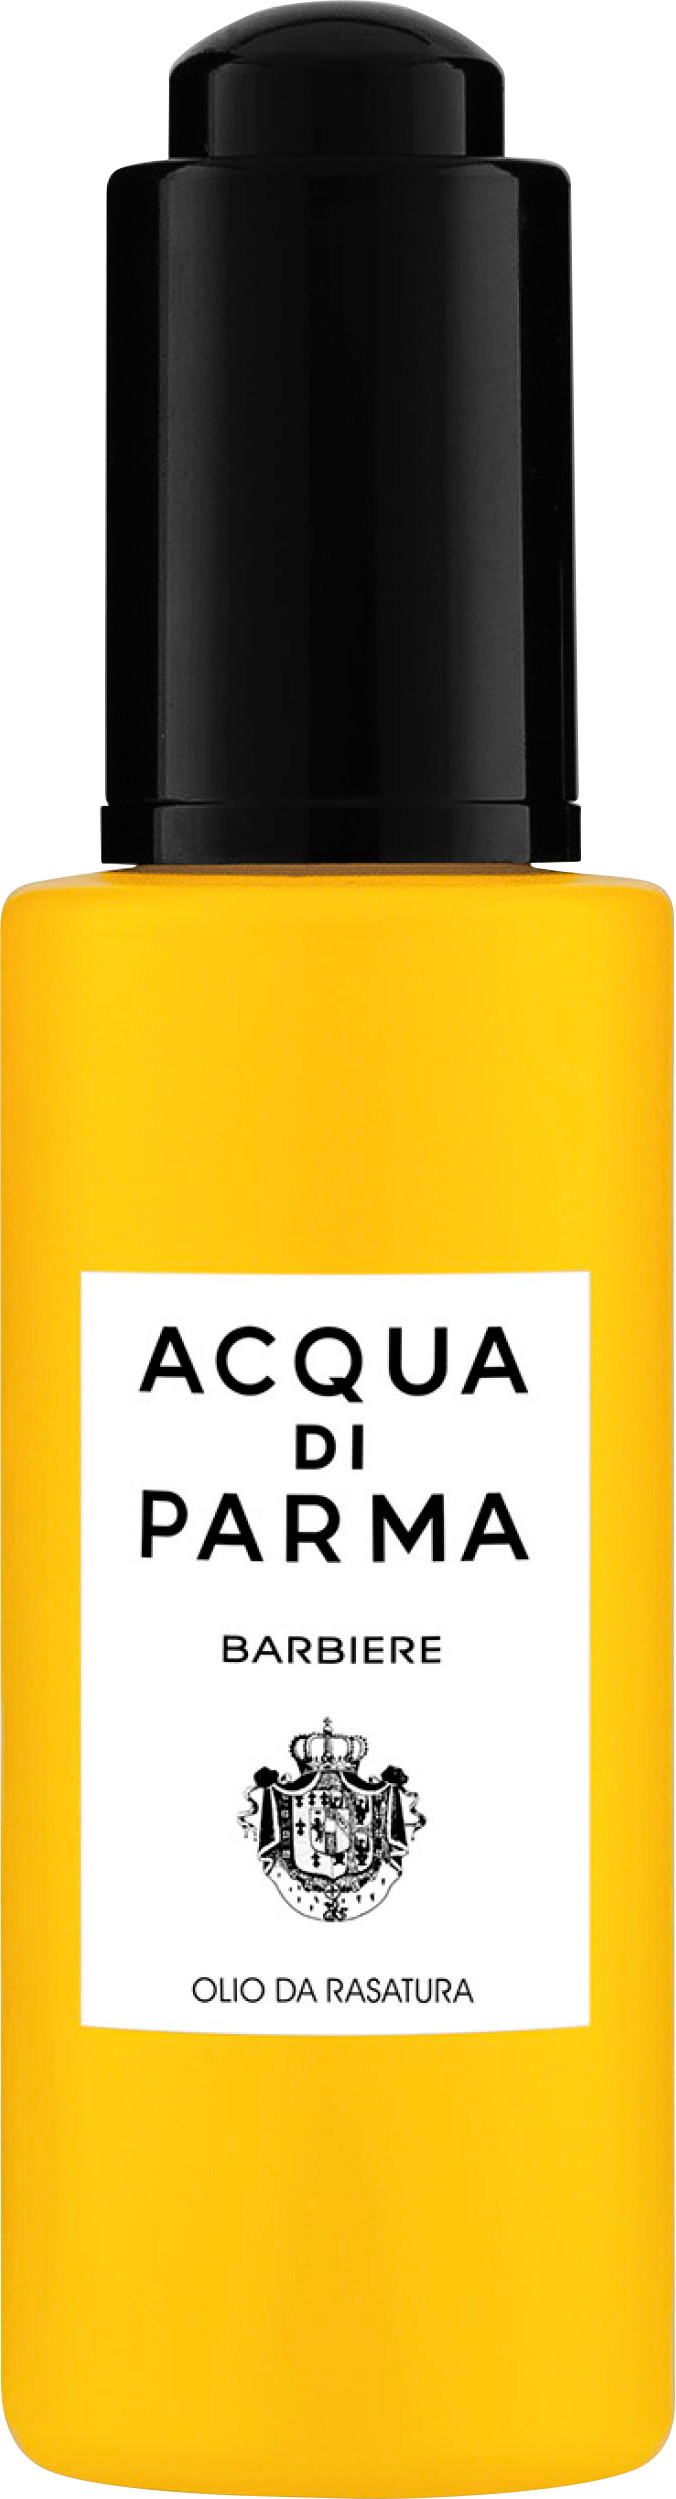 Fragrance Acqua Di Parma Barbiere Shaving Oil